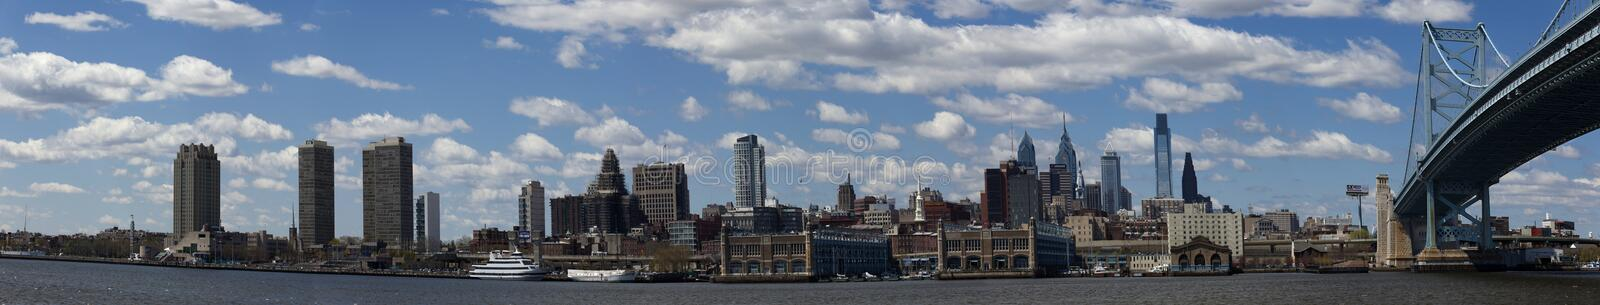 Philadelphia (panoramic) royalty free stock images